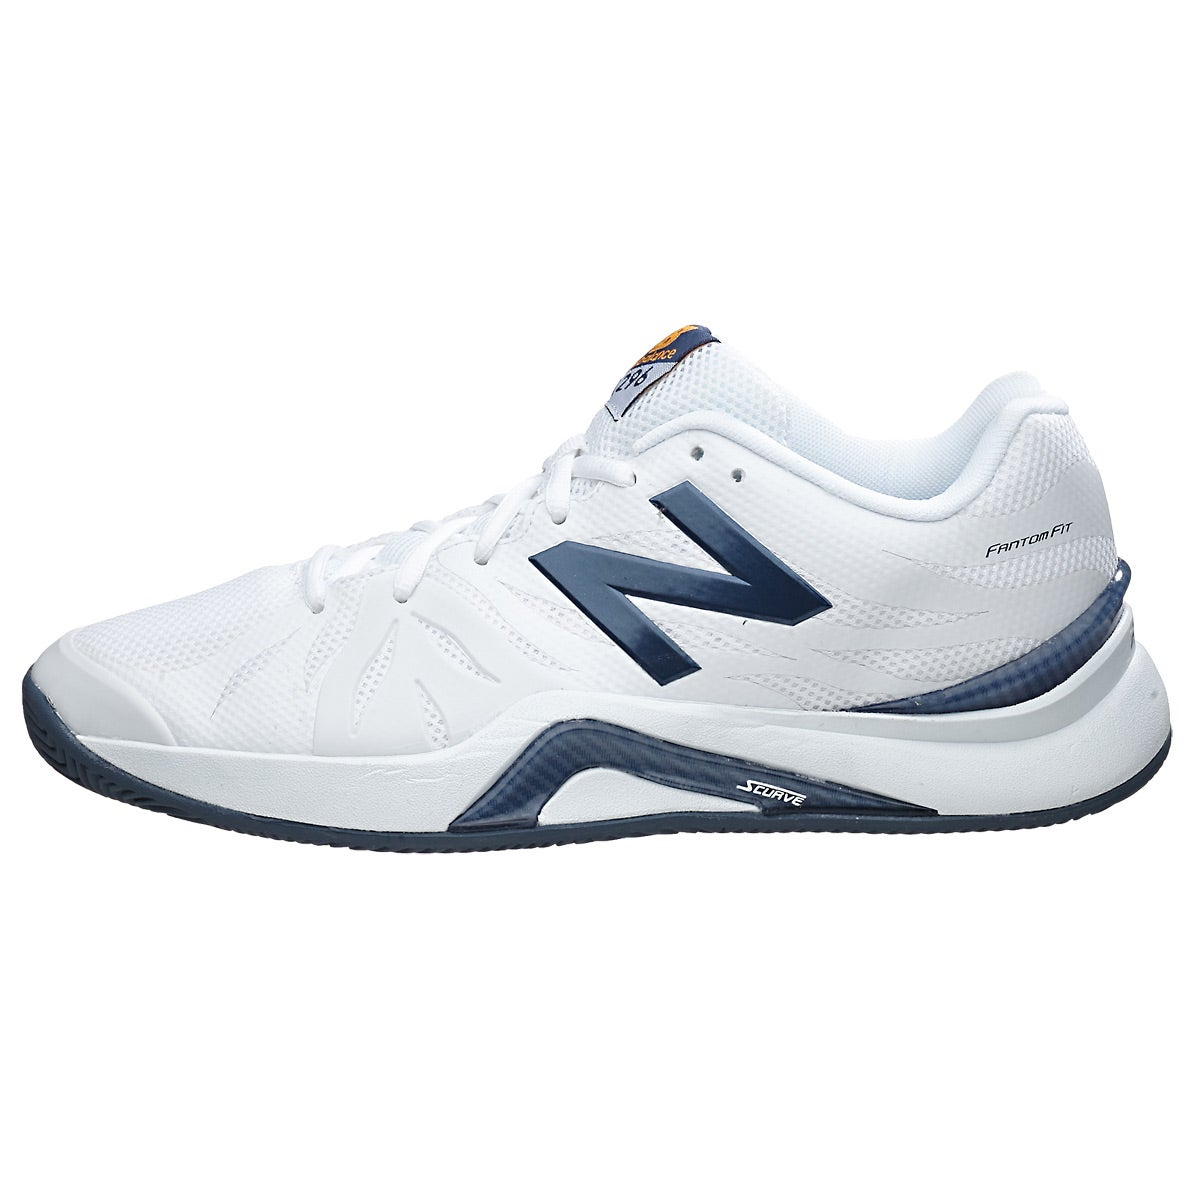 White And Blue New Balance Shoes